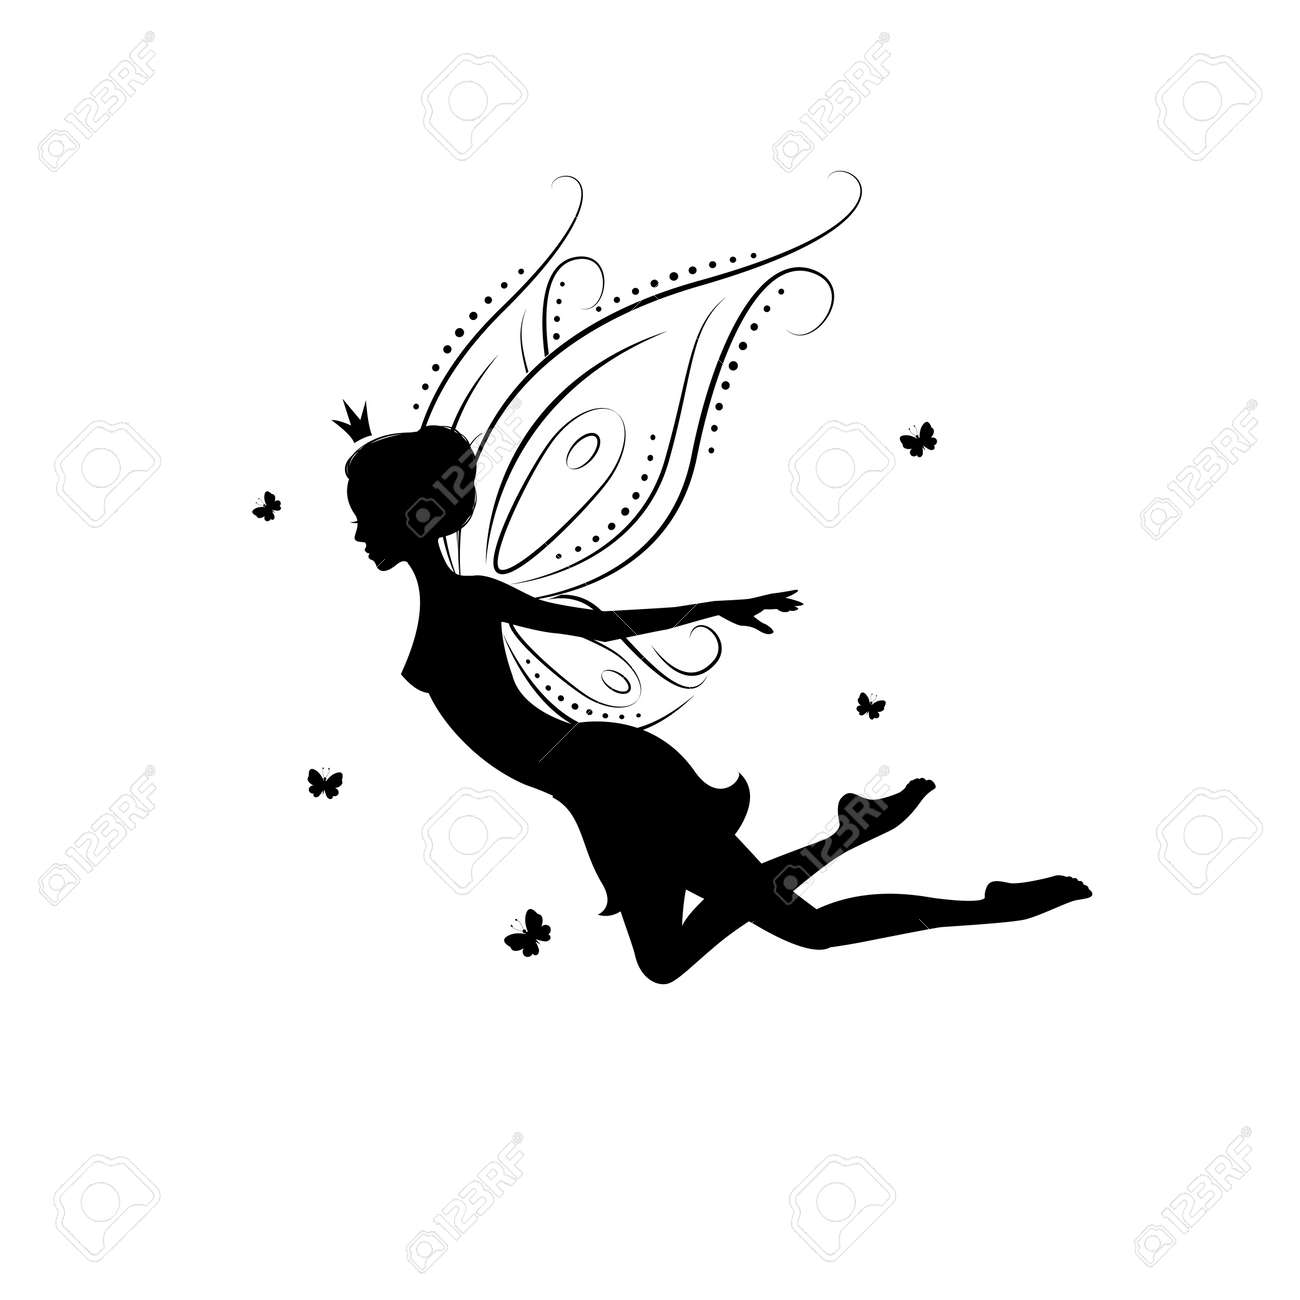 Silhouette Of A Fairy Template For Cut Laser Or Engraved Stencil